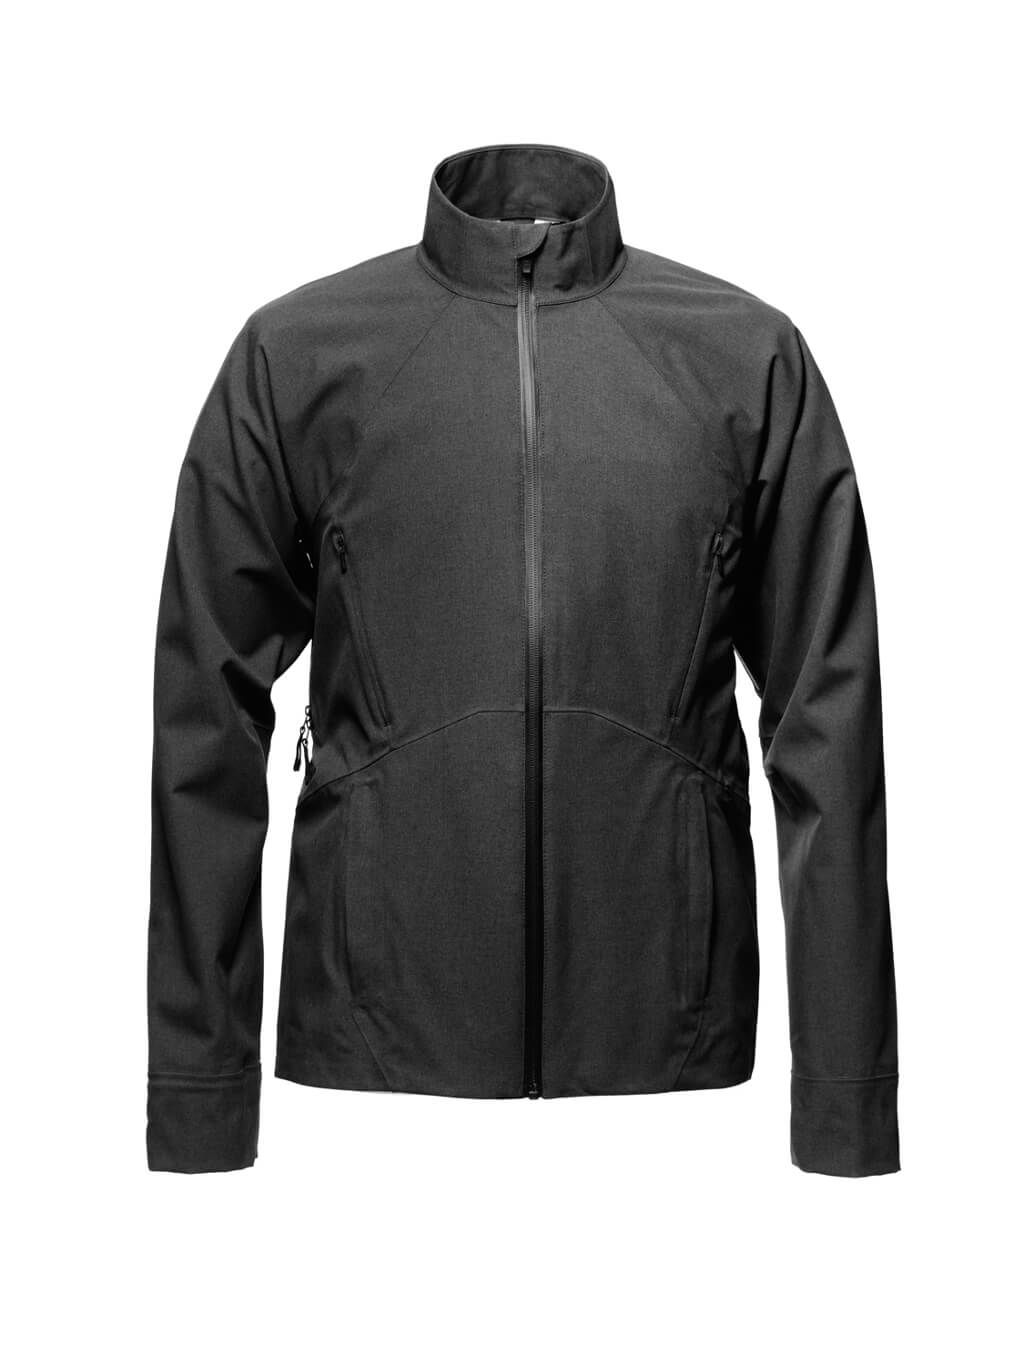 Aether men's bicycle clothing